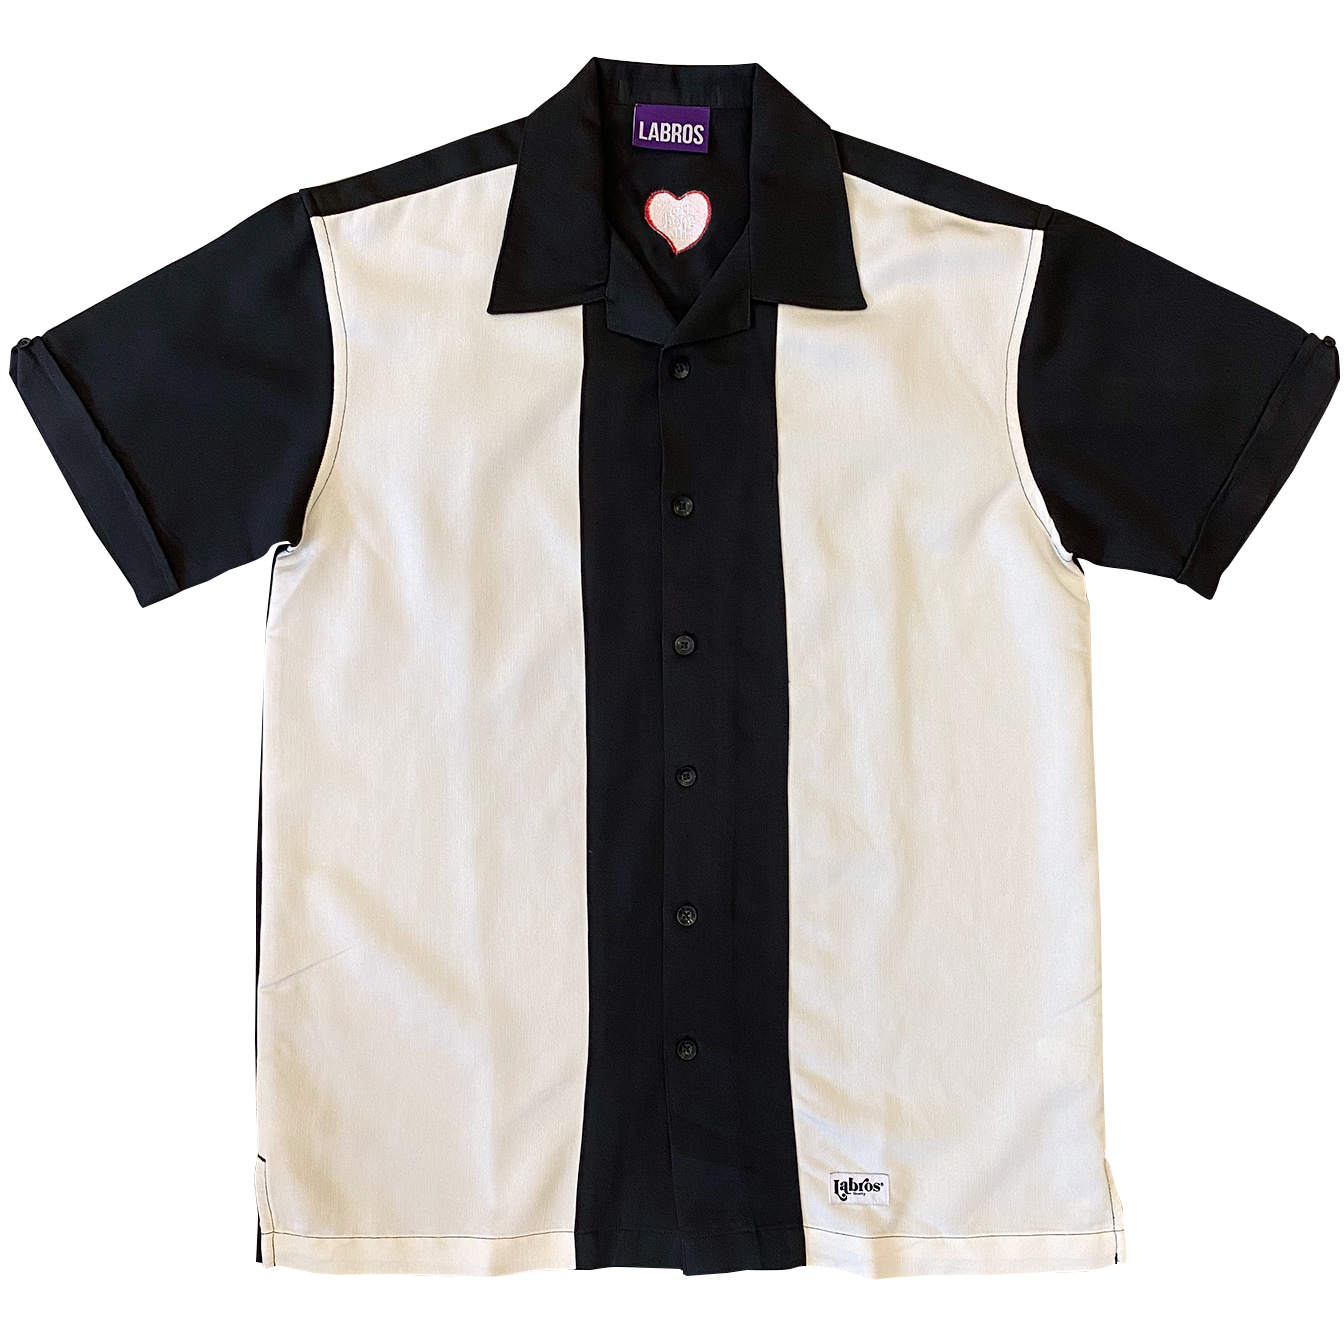 Heart Two Tone Shirt (Black)